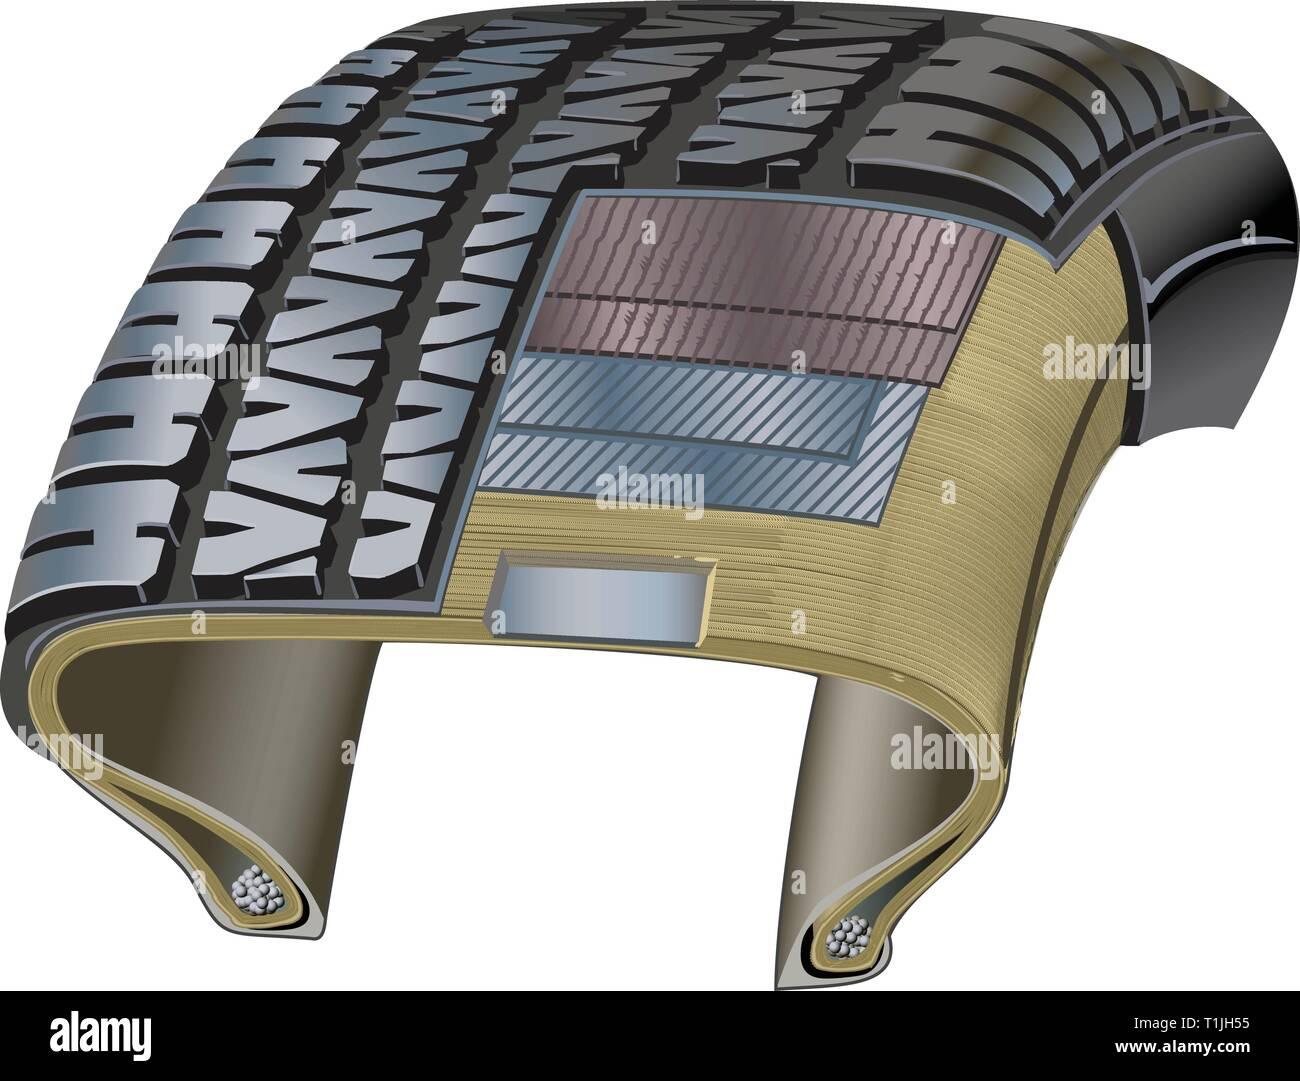 Tire Cross-section showing various layers used in construction. - Stock Vector